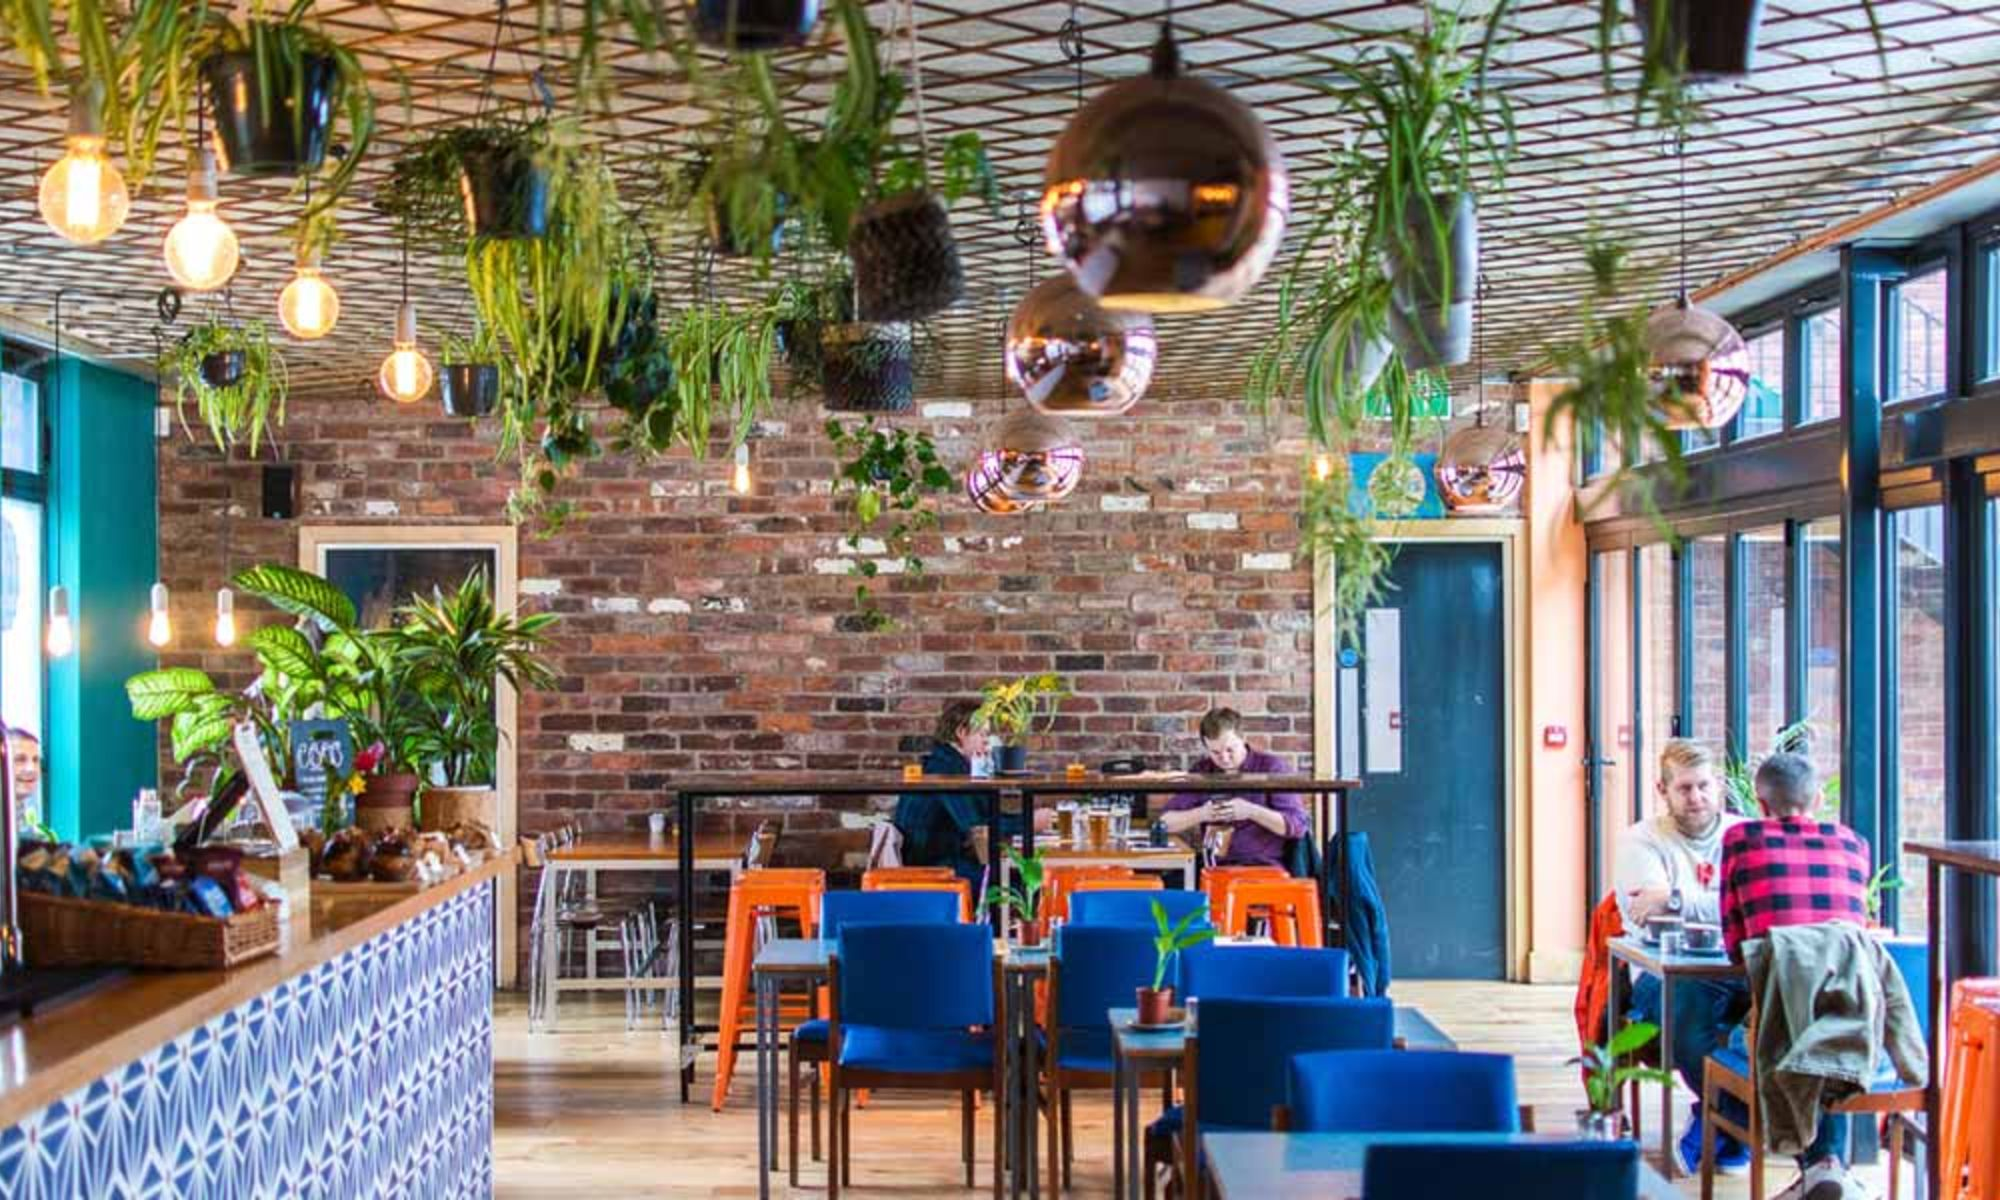 Neighbourhood food and drink study places Sheffield